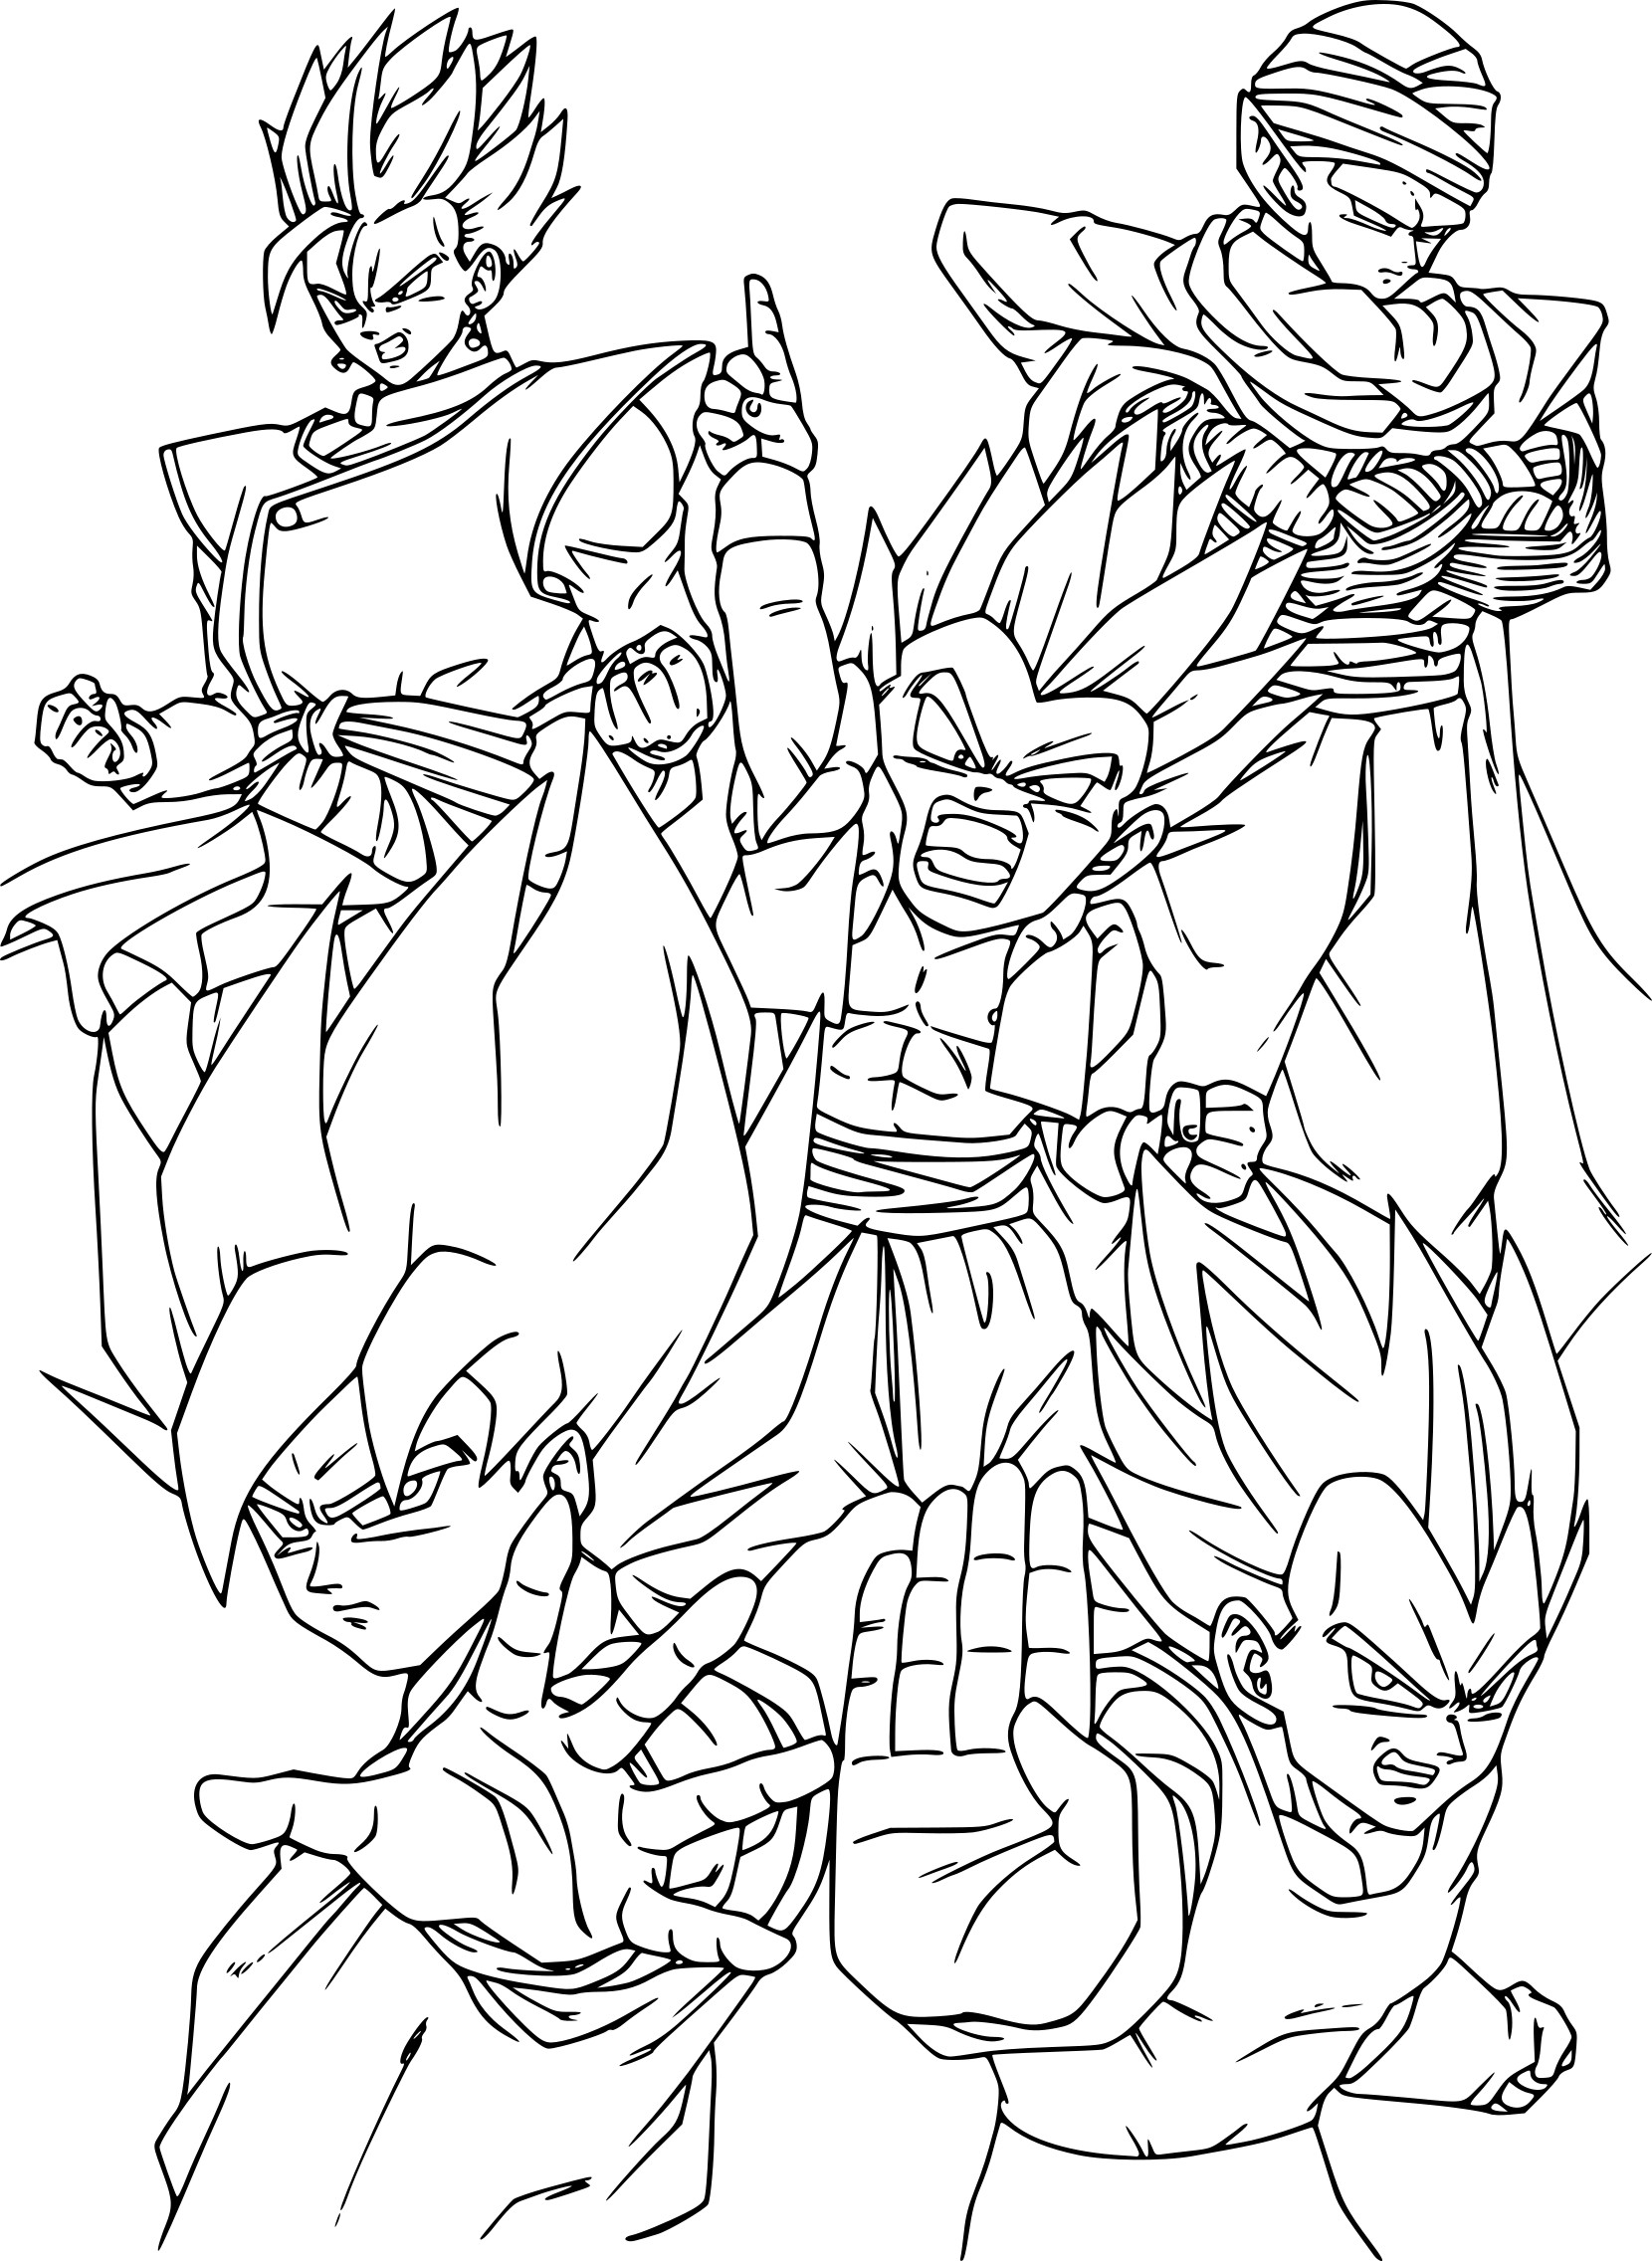 Coloriage dragon ball z imprimer sur coloriages info - Dessin de dragon ball za imprimer ...